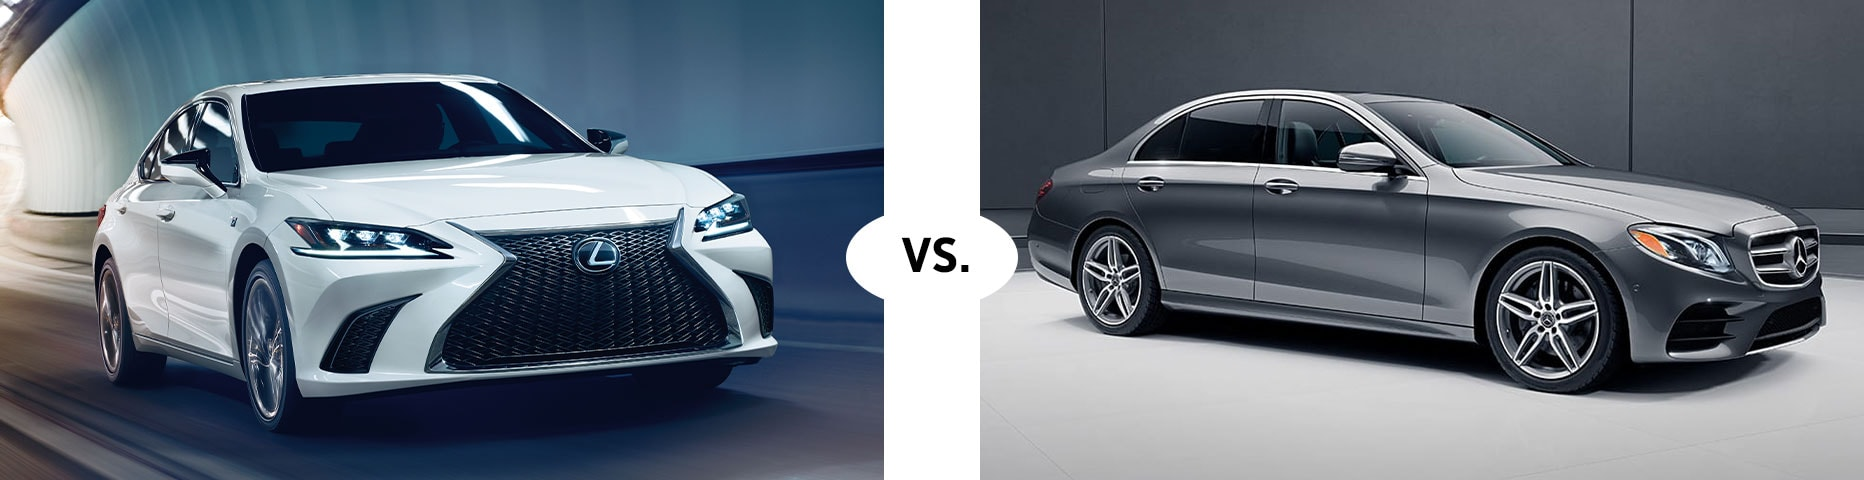 2019 LEXUS ES 350 VS. 2019 MERCEDES BENZ E 300